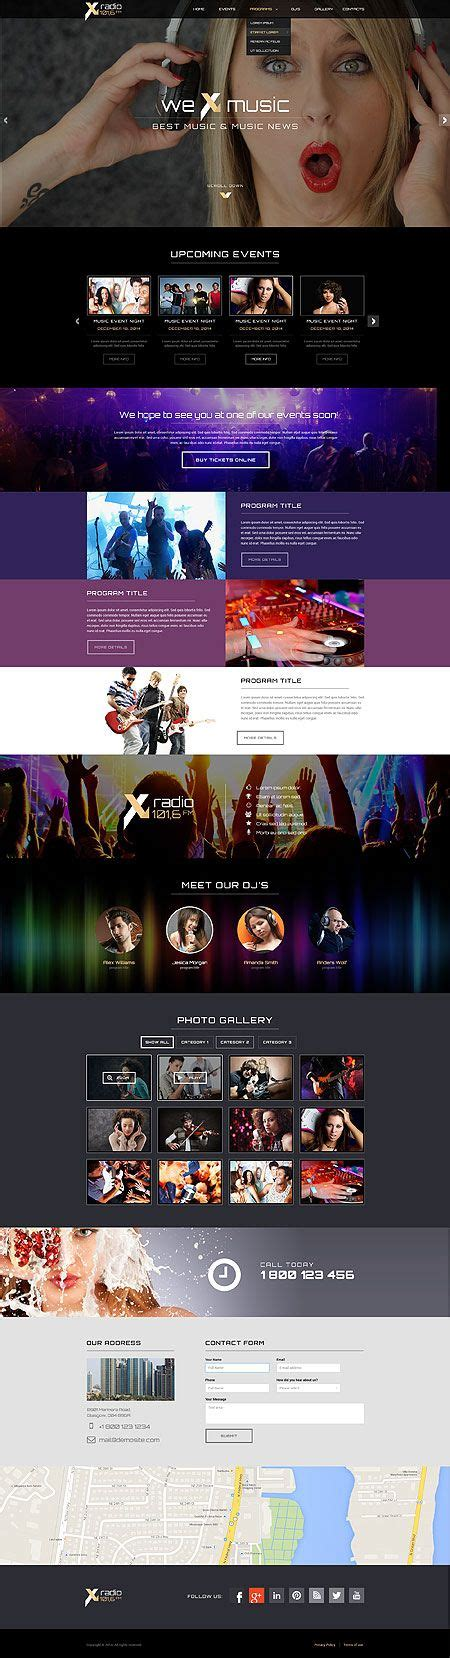 bootstrap themes unity radio station html bootstrap template html